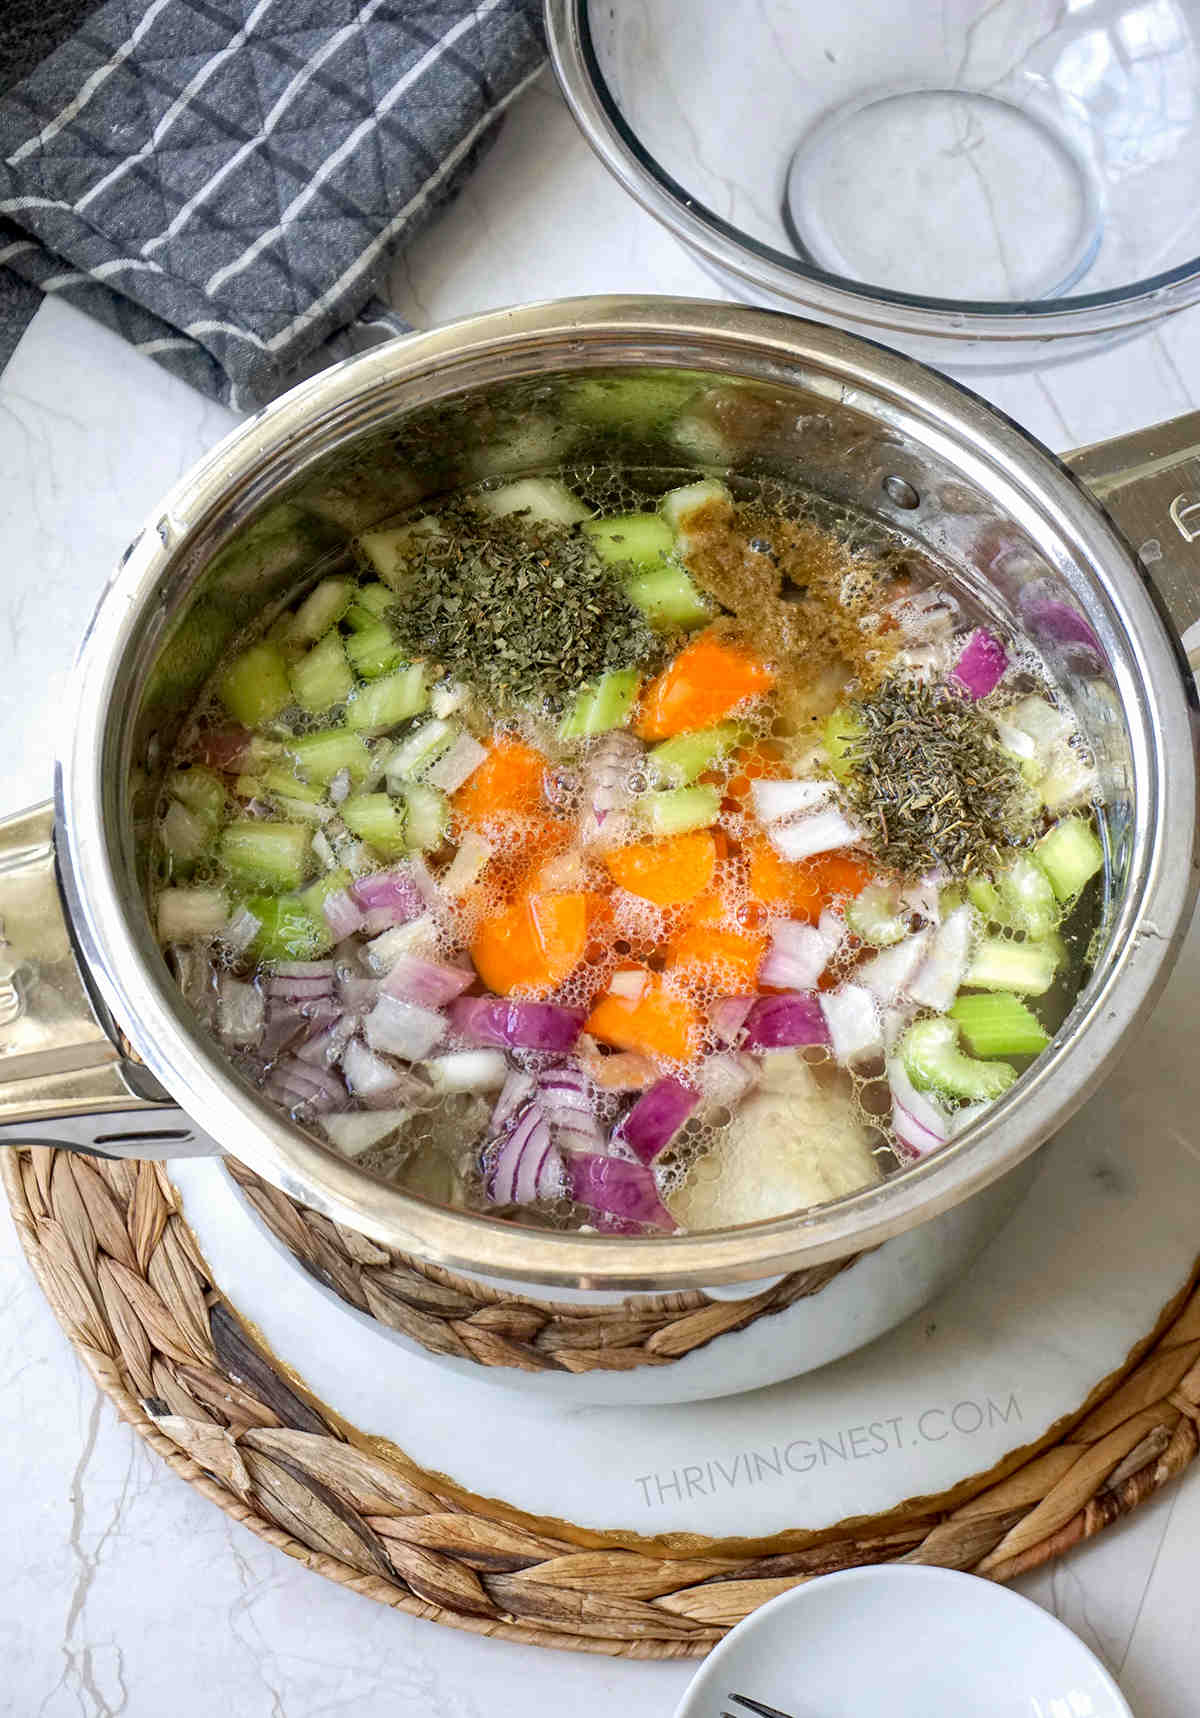 Added vegetables to the chicken stock/broth.